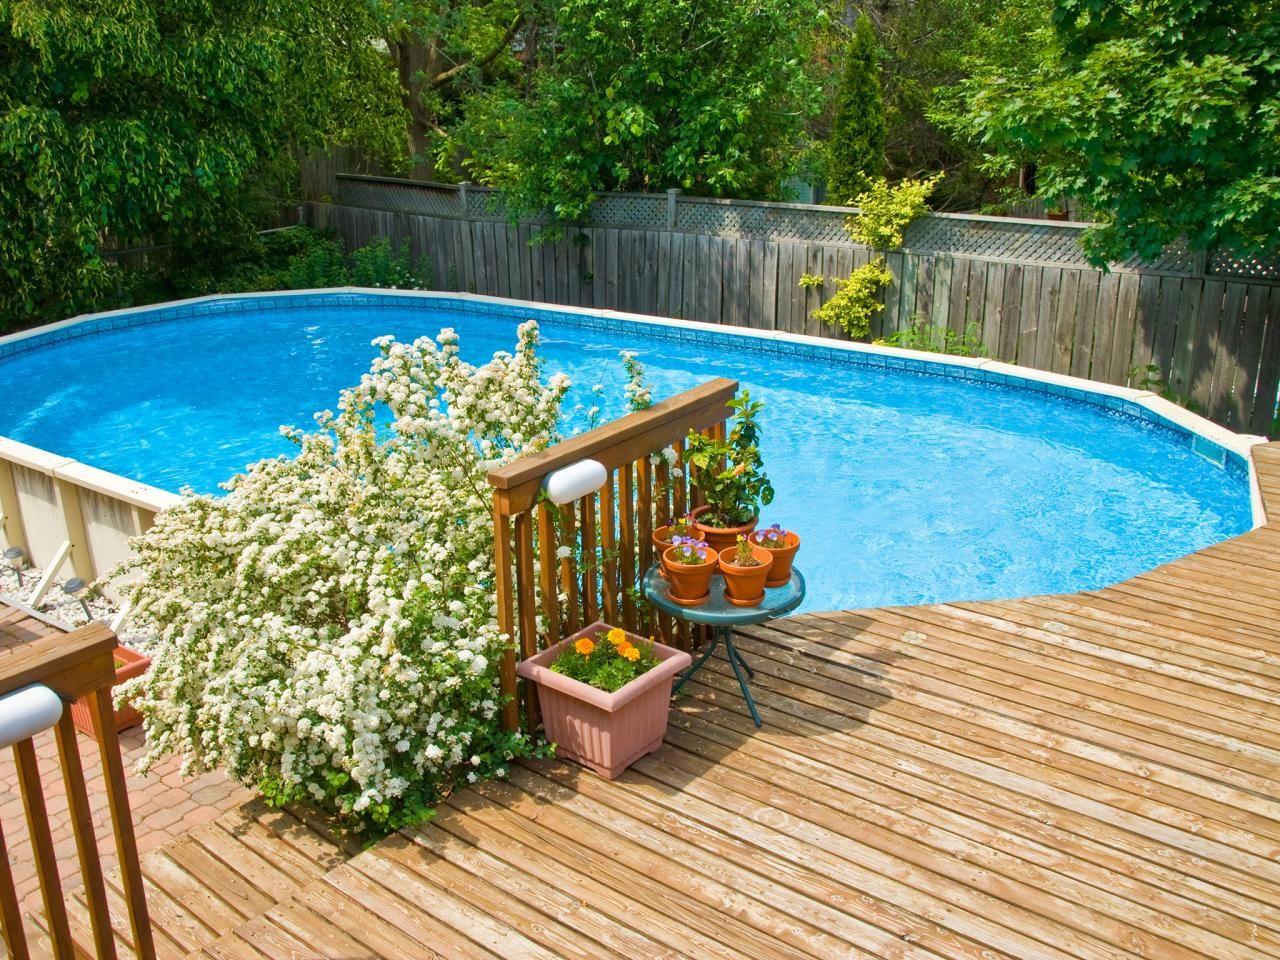 Luxury Backyard Swimming Poolsoval Above Ground Pool Deck in-ground vs. above-ground pools | ground pools, deck patio and